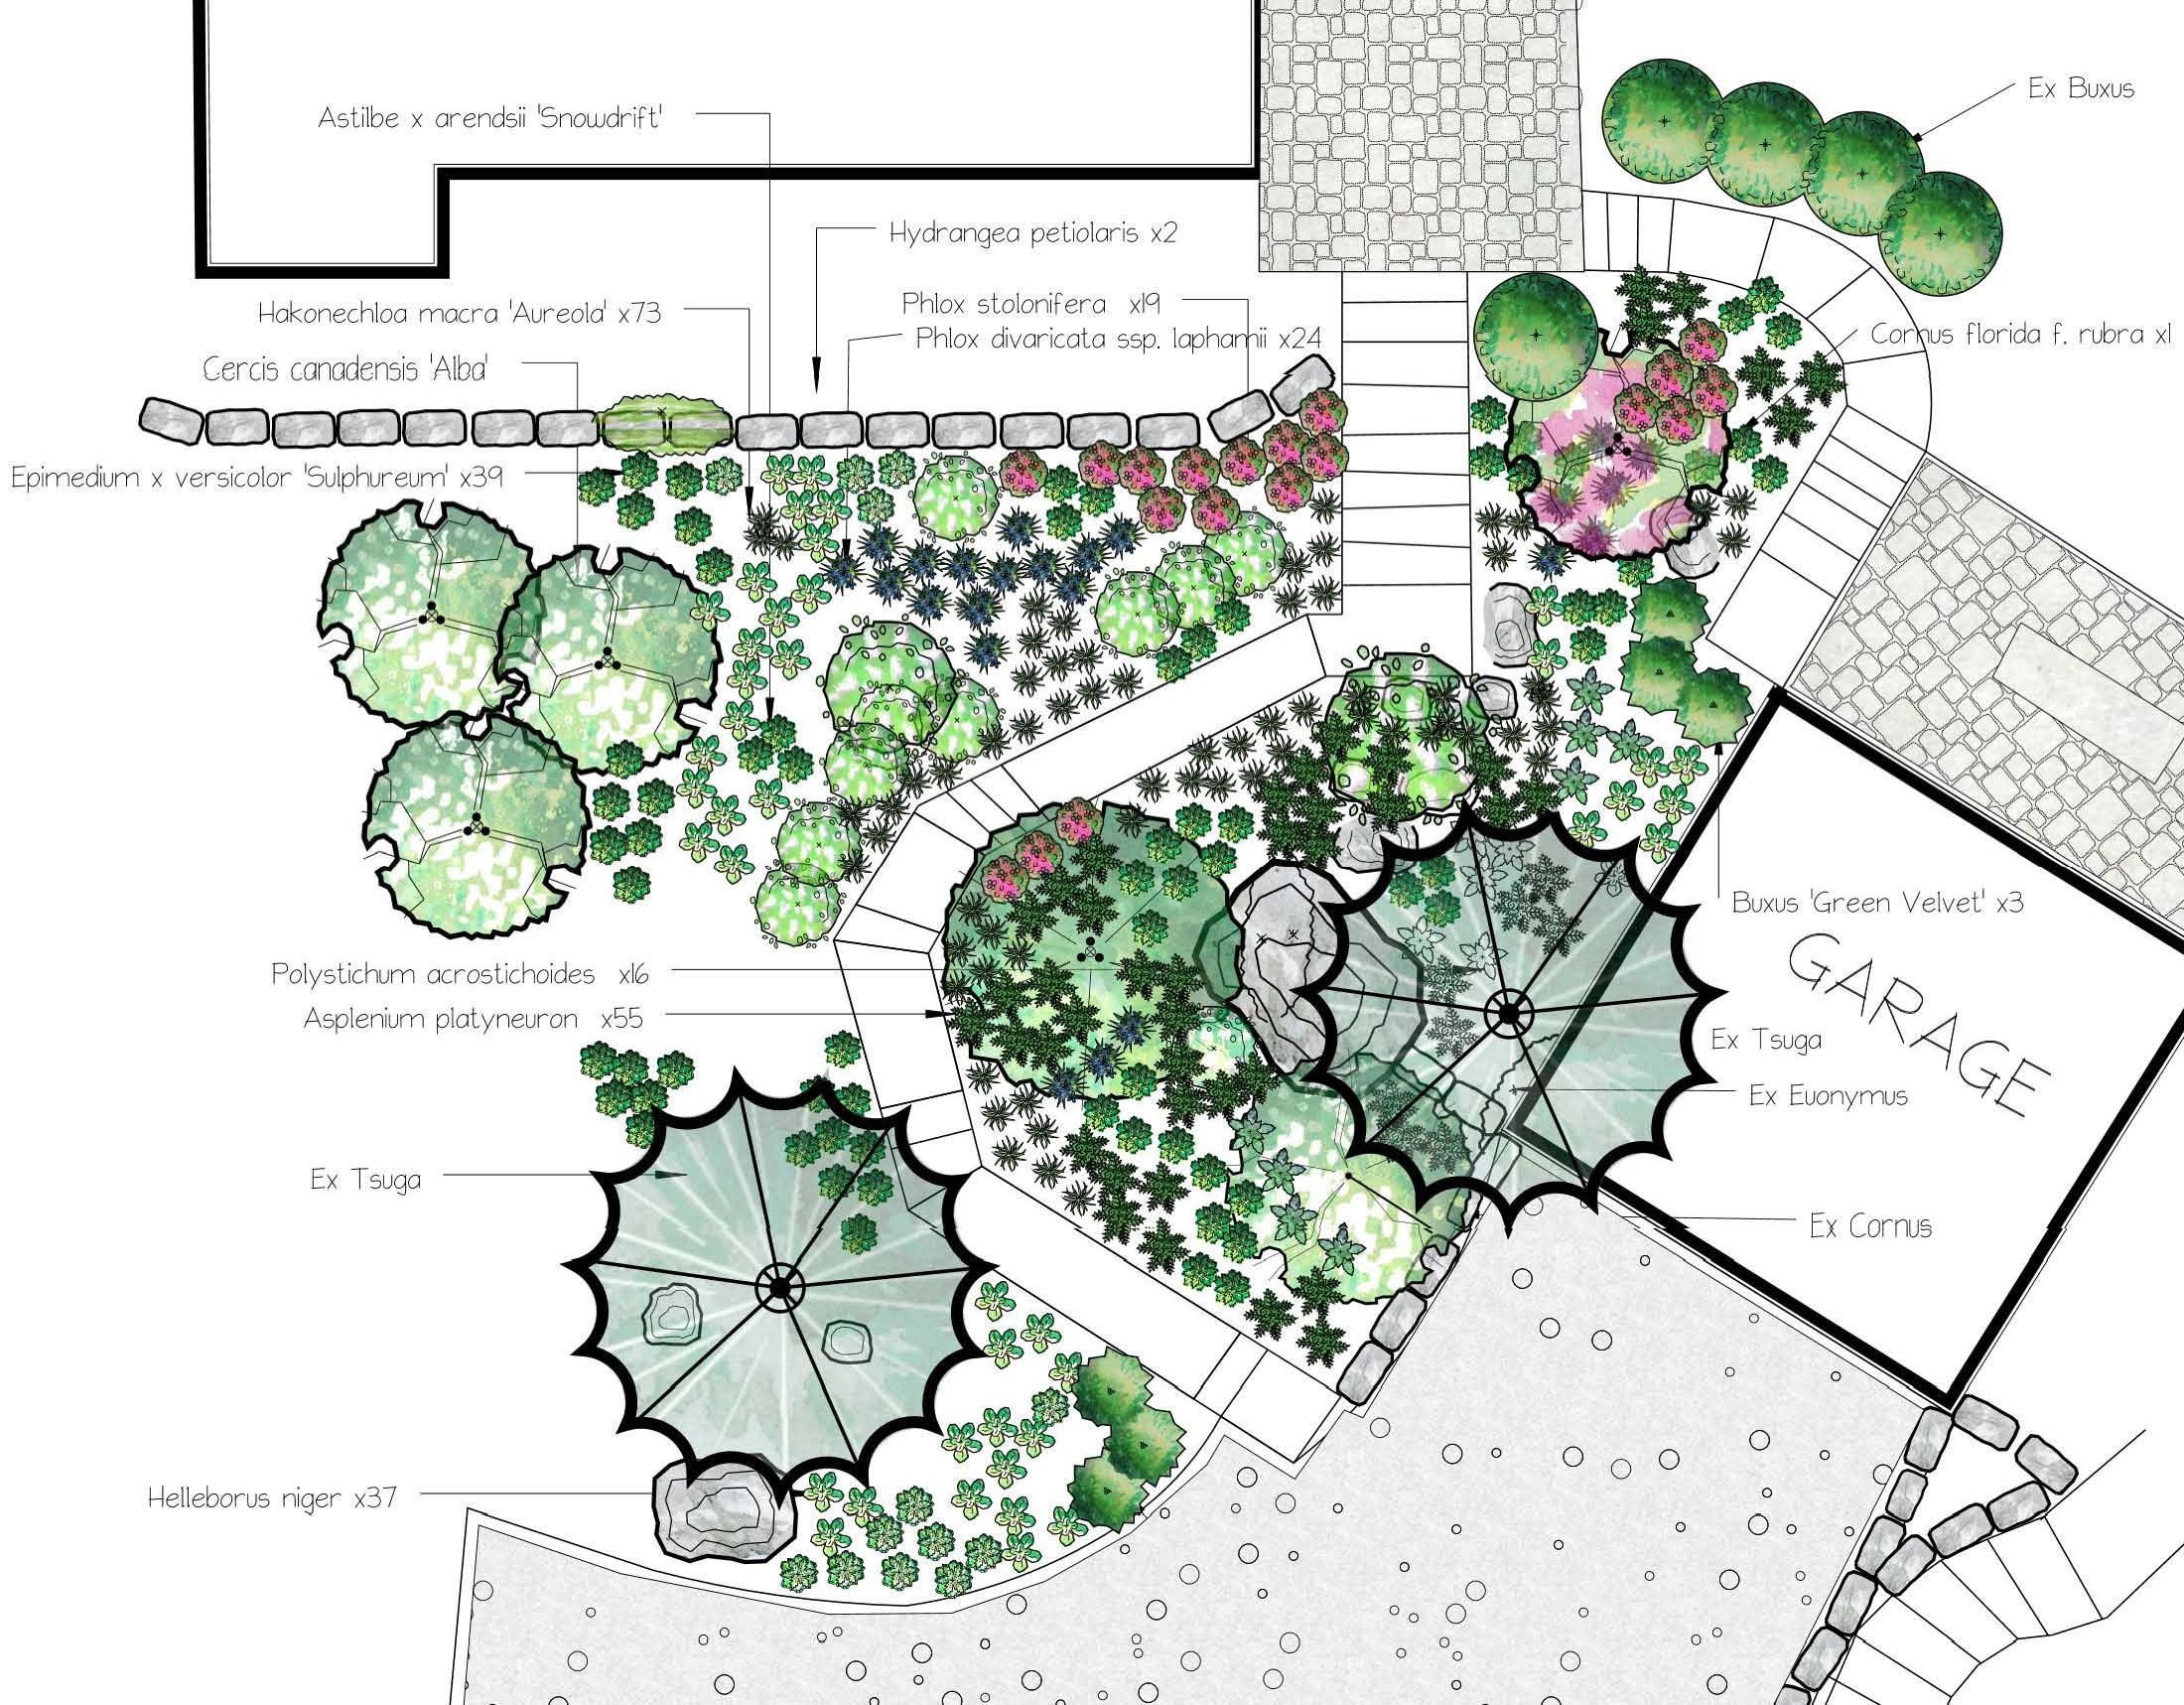 Detailed planting and installation plans